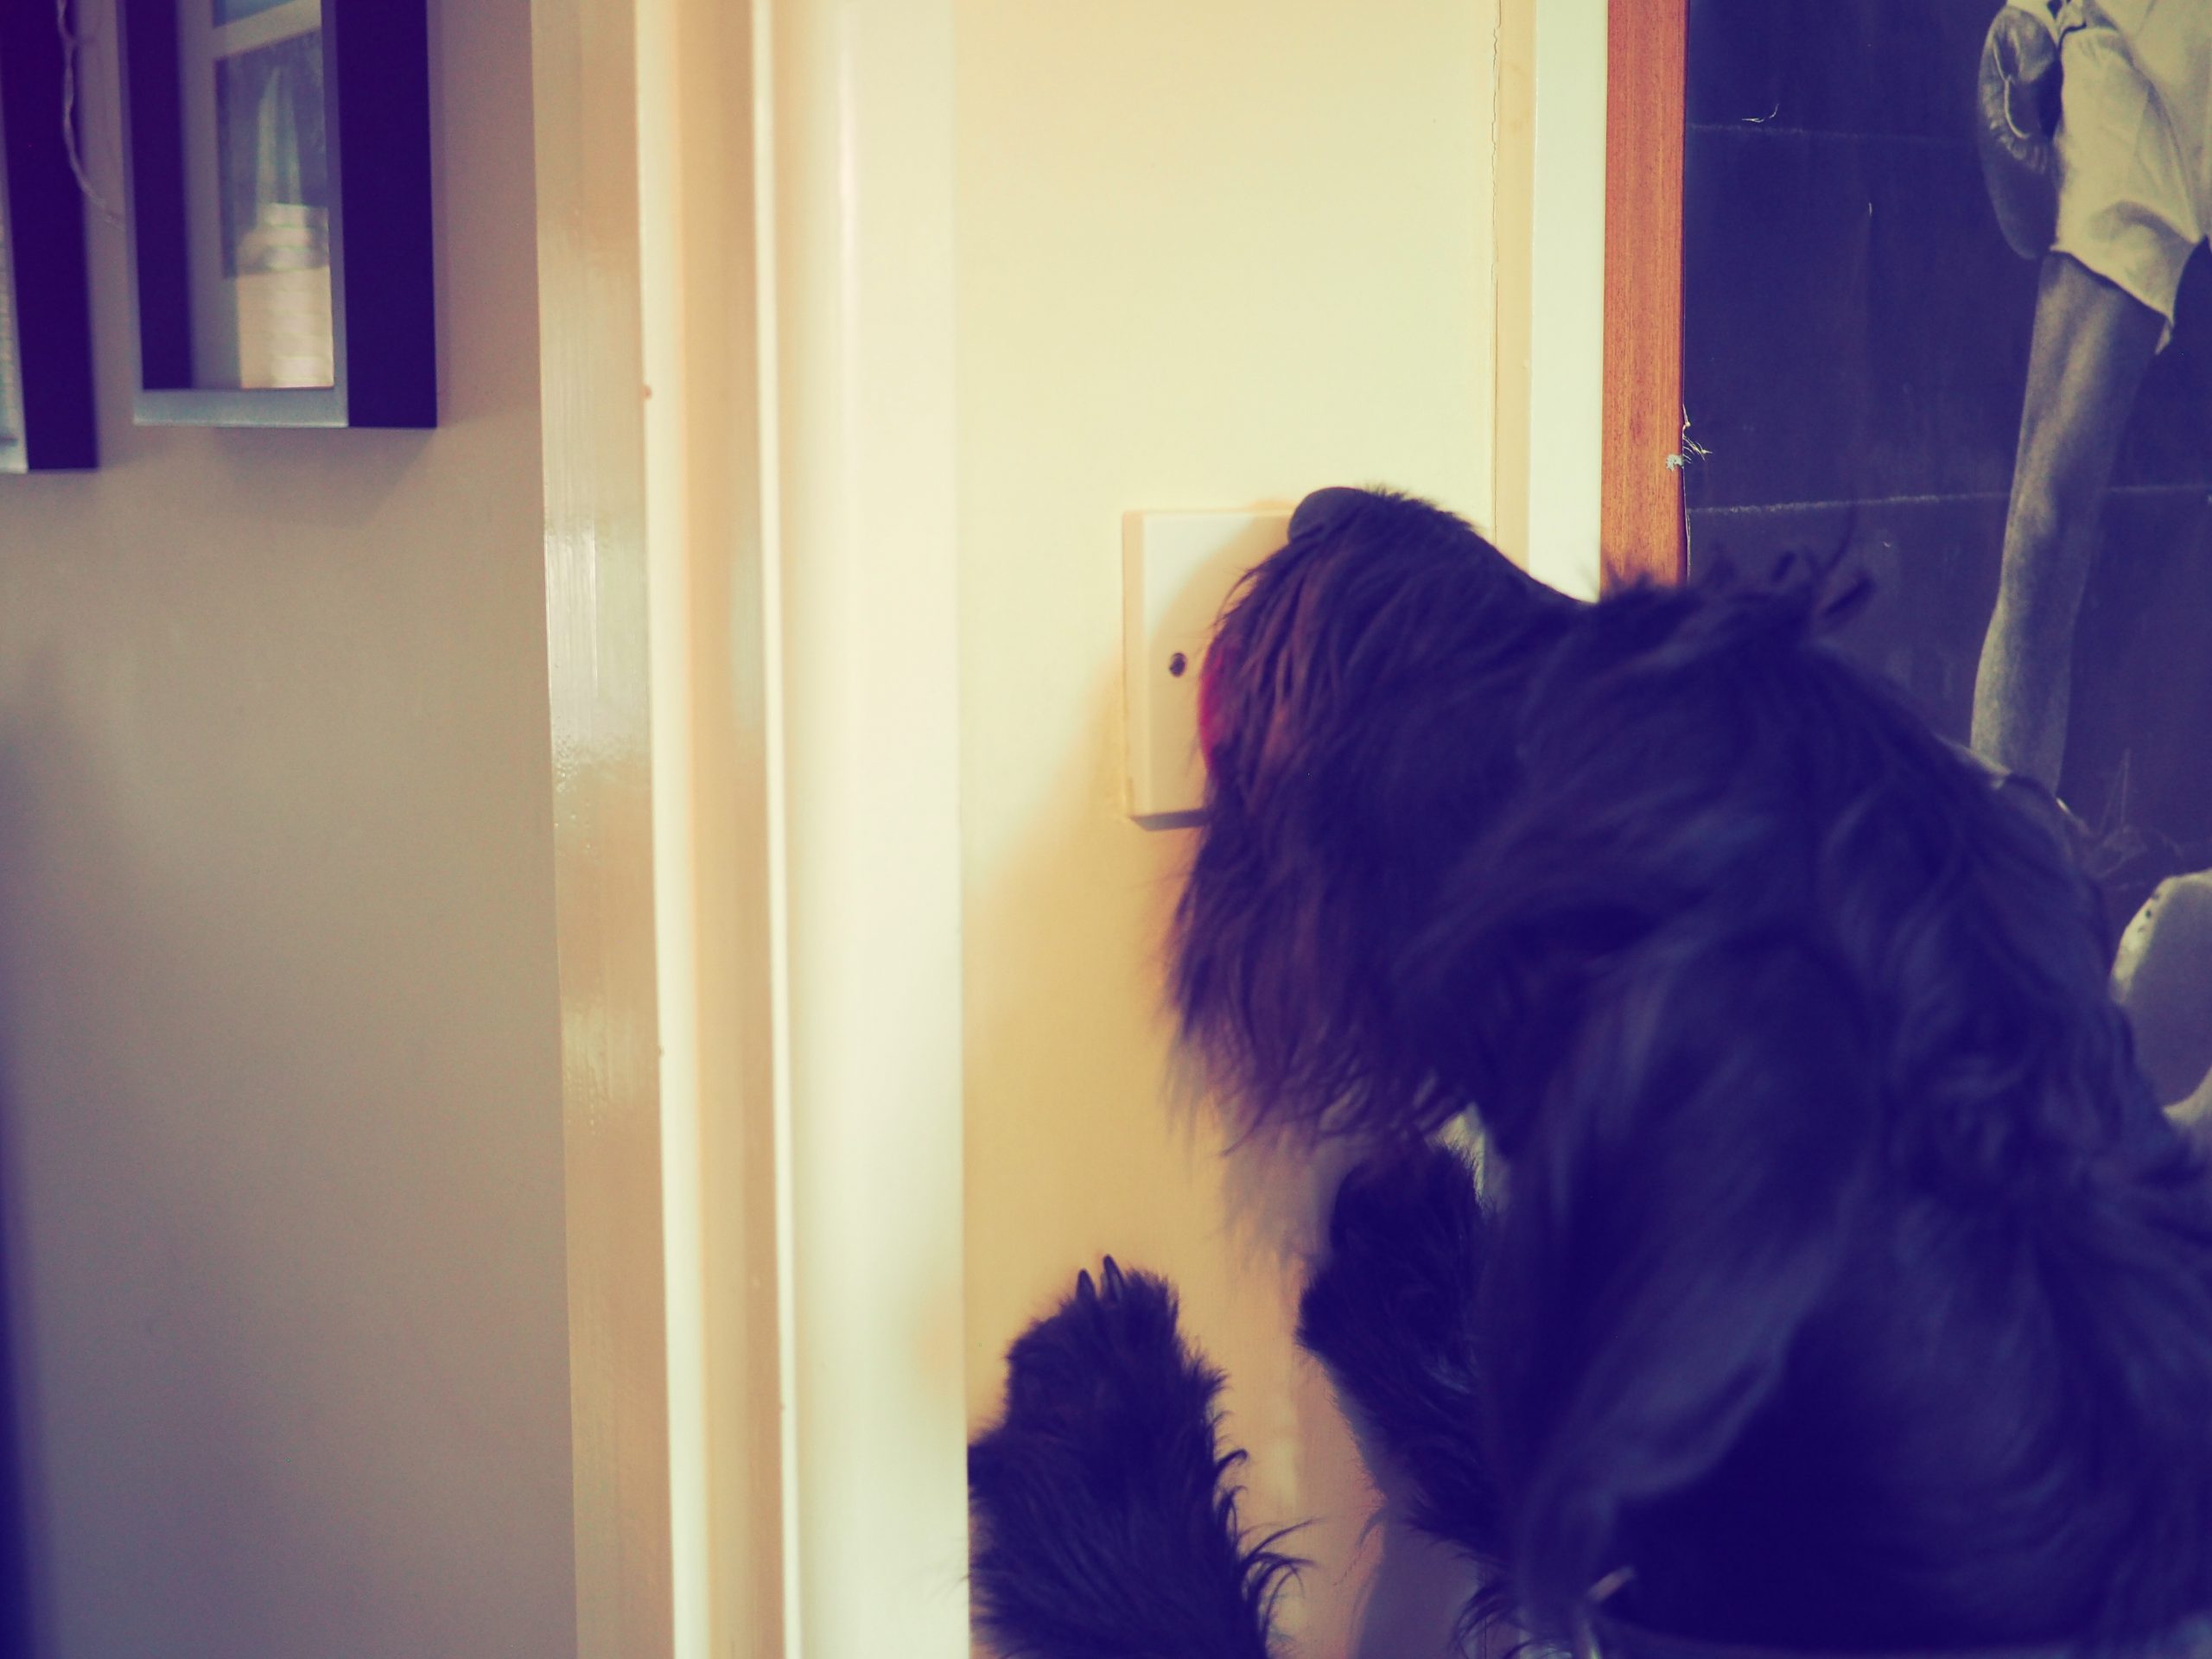 Pablo the dog licking a light switch to turn the lights out